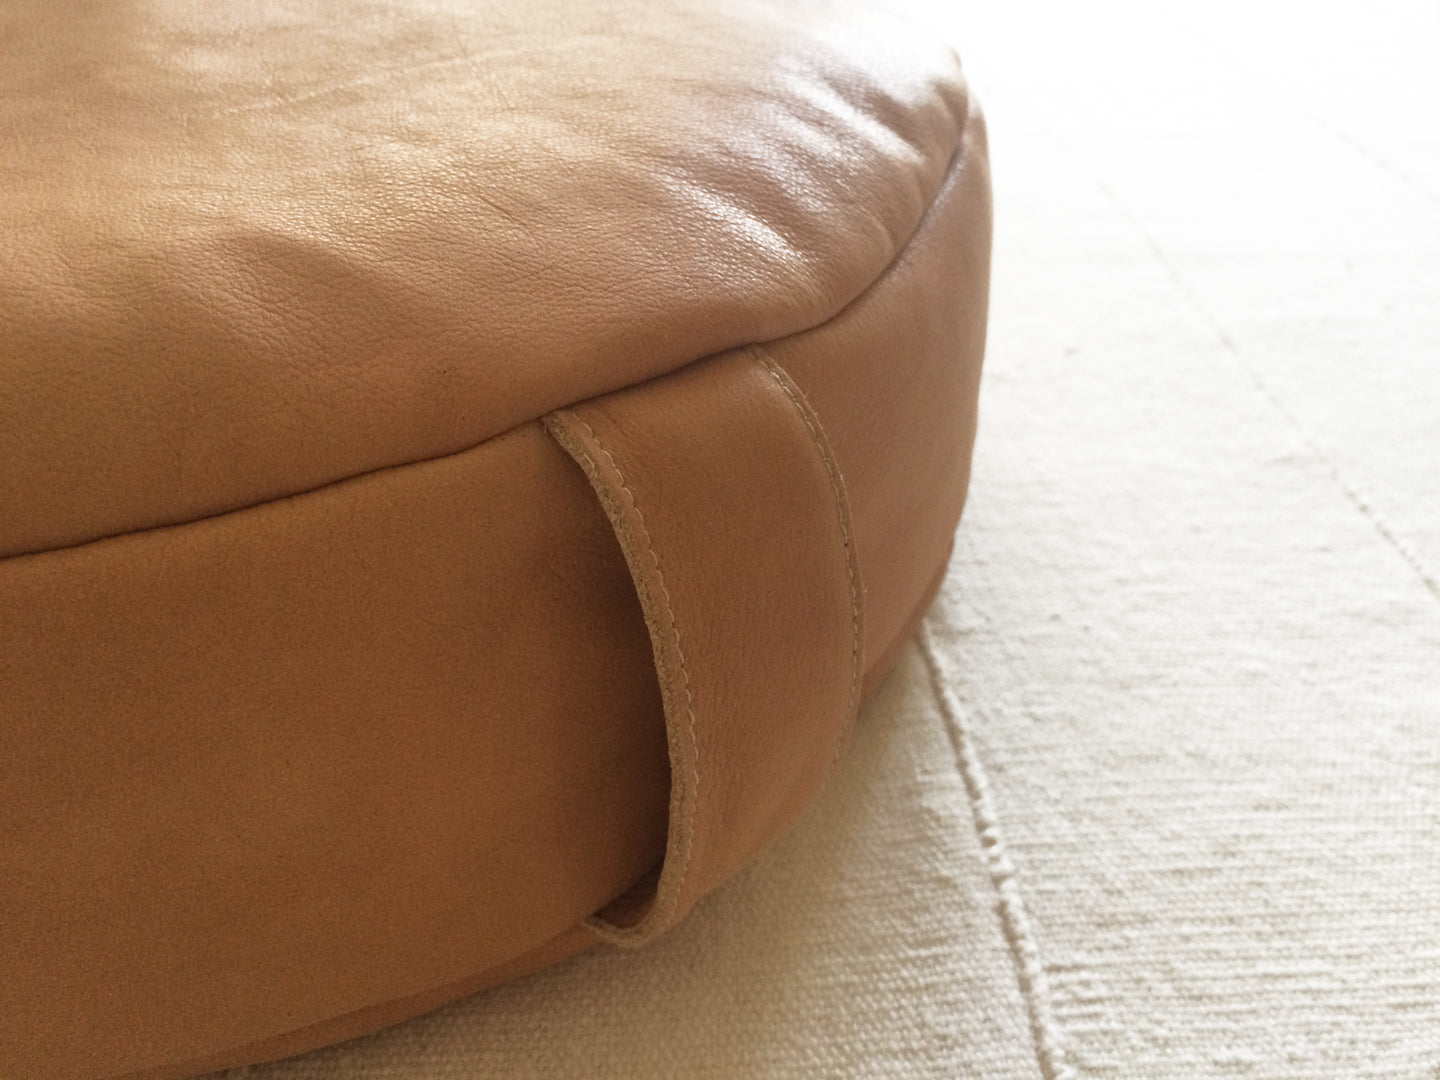 PEBBLE meditation cushion in caramel nubuck